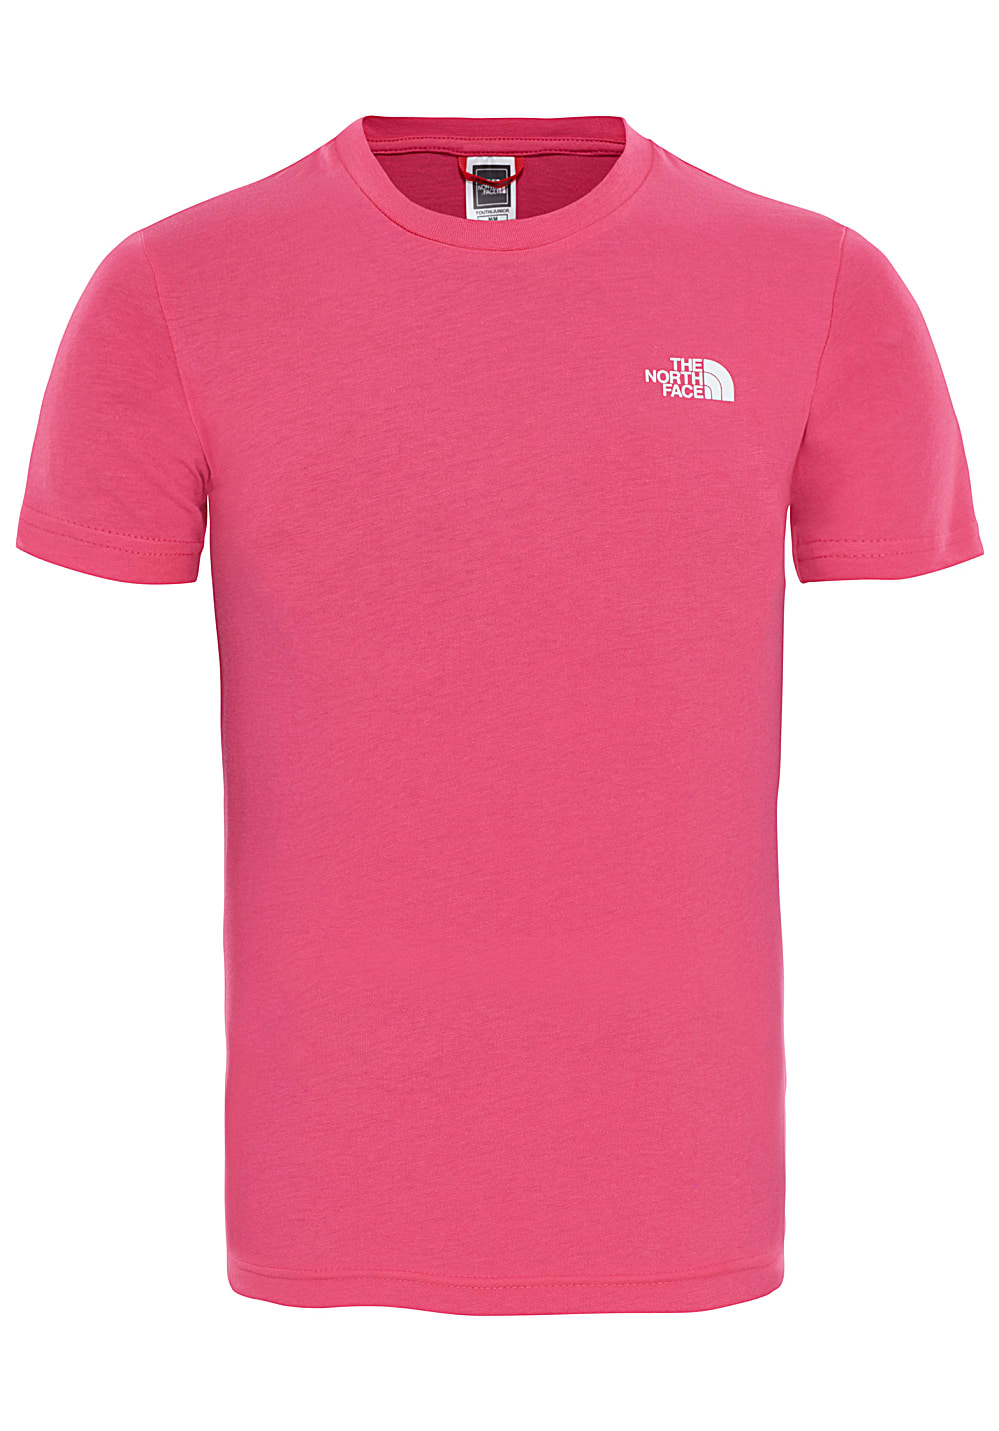 The North Face Simple Dome T-Shirt - Pink